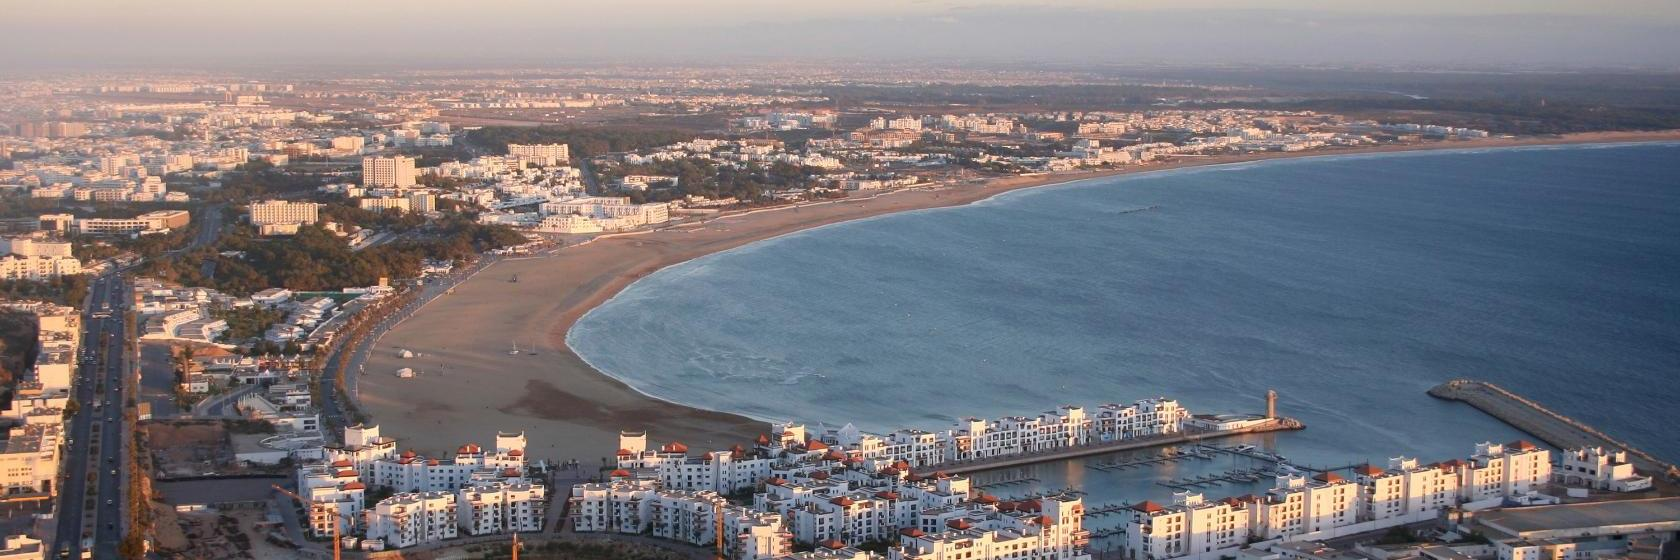 10 Best Agadir Hotels Morocco From 27